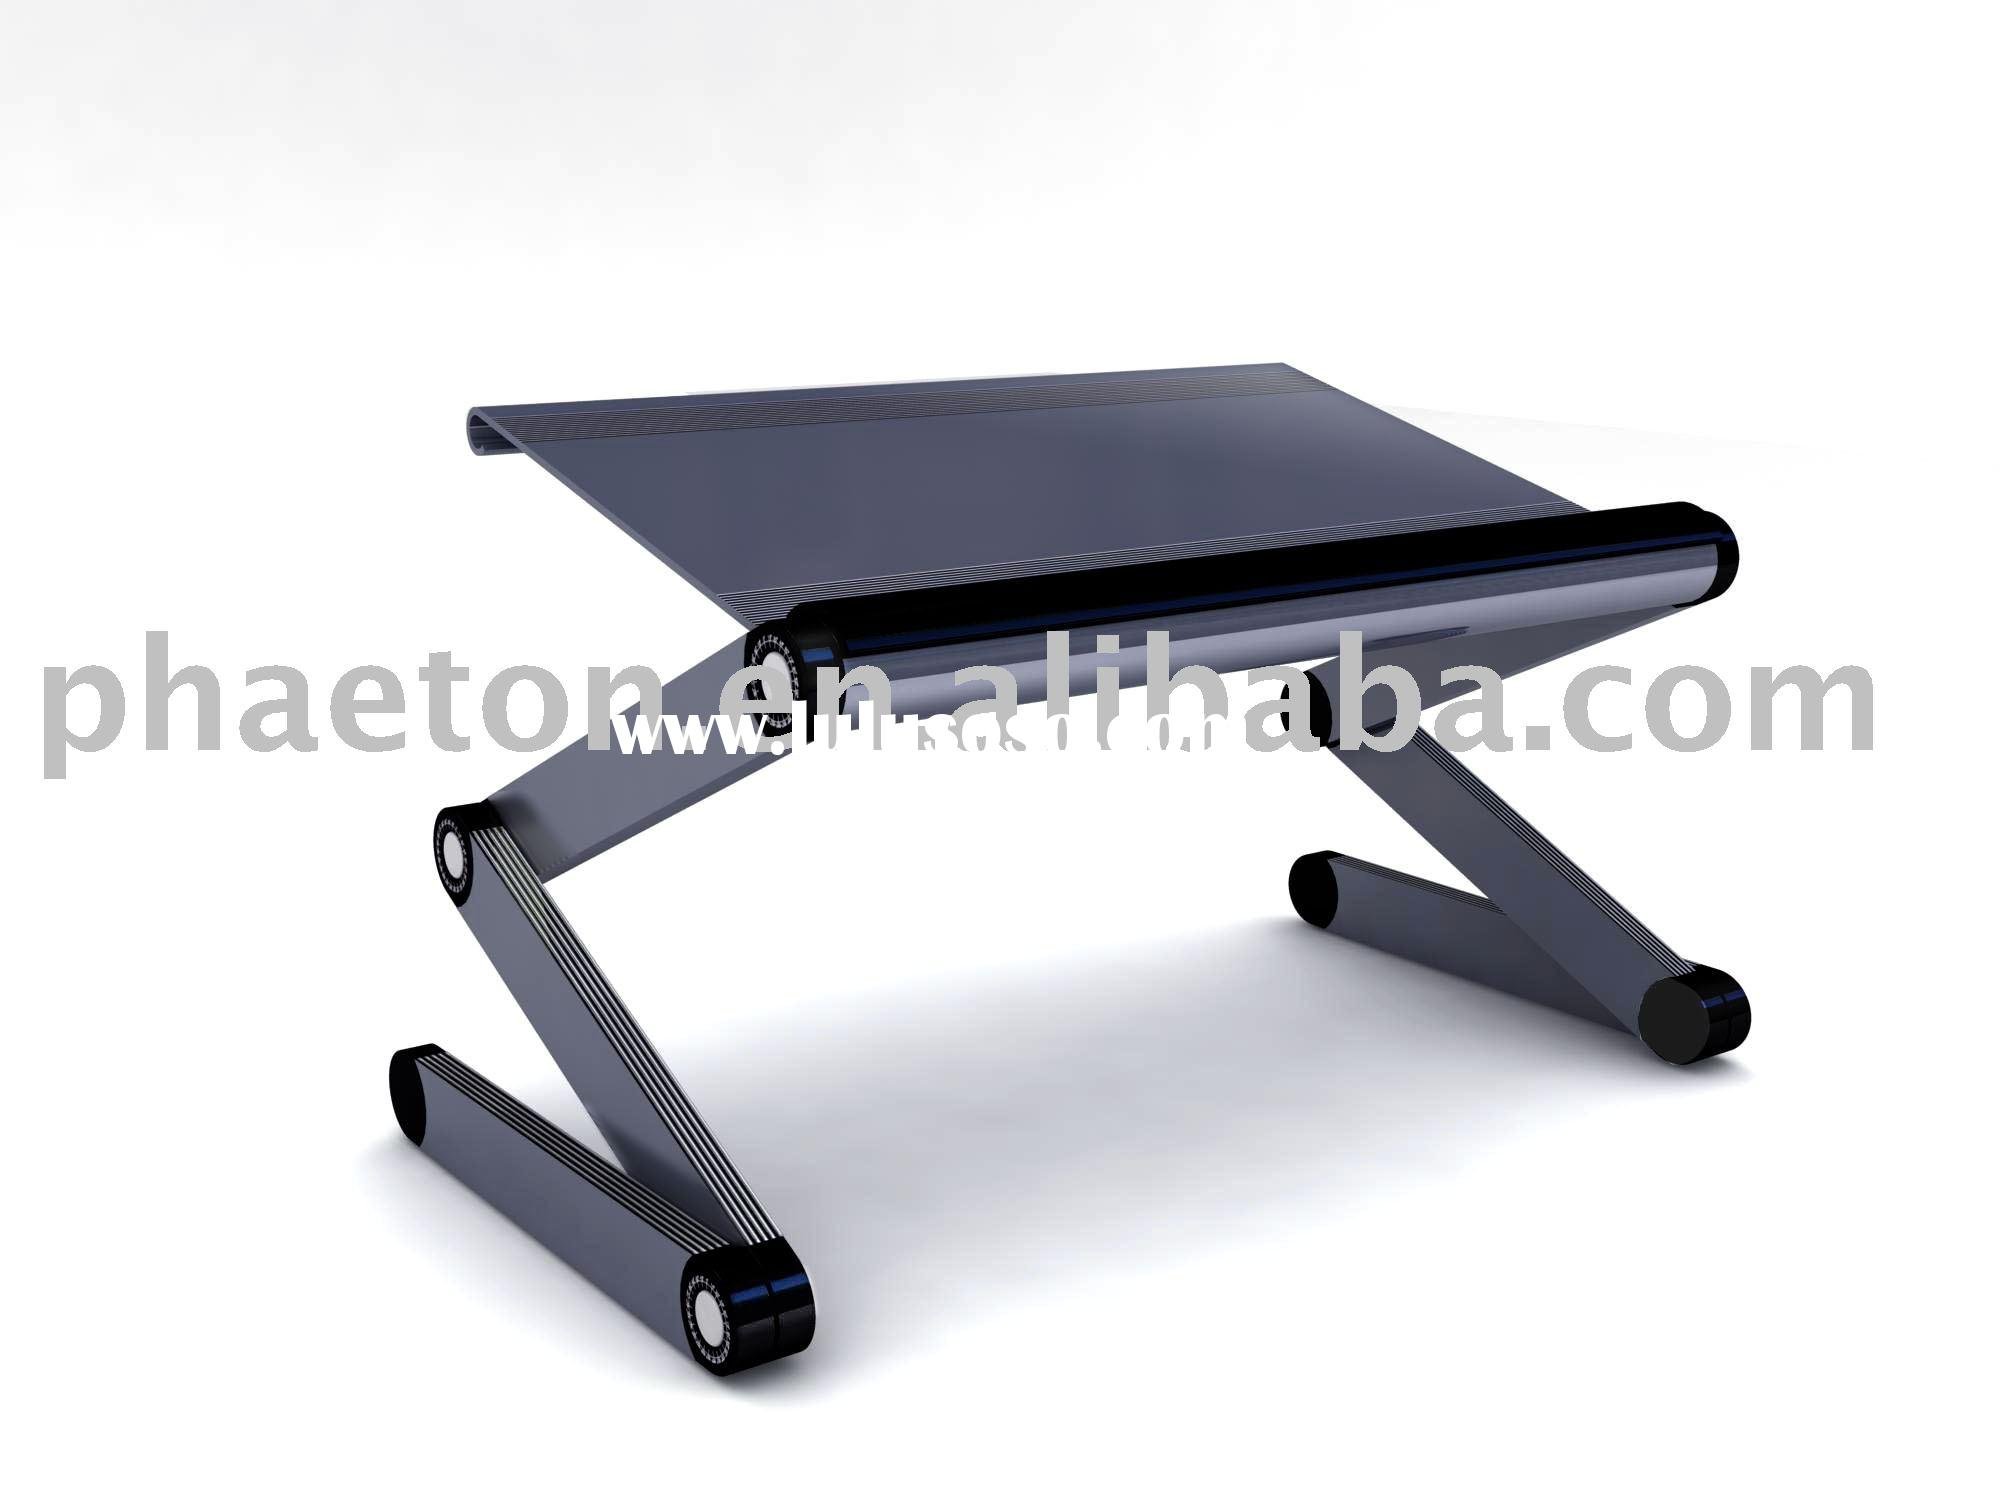 laptop desk/portable PC desk/notebook desk/notebook stand/notebook table/laptop table/laptop stand/c